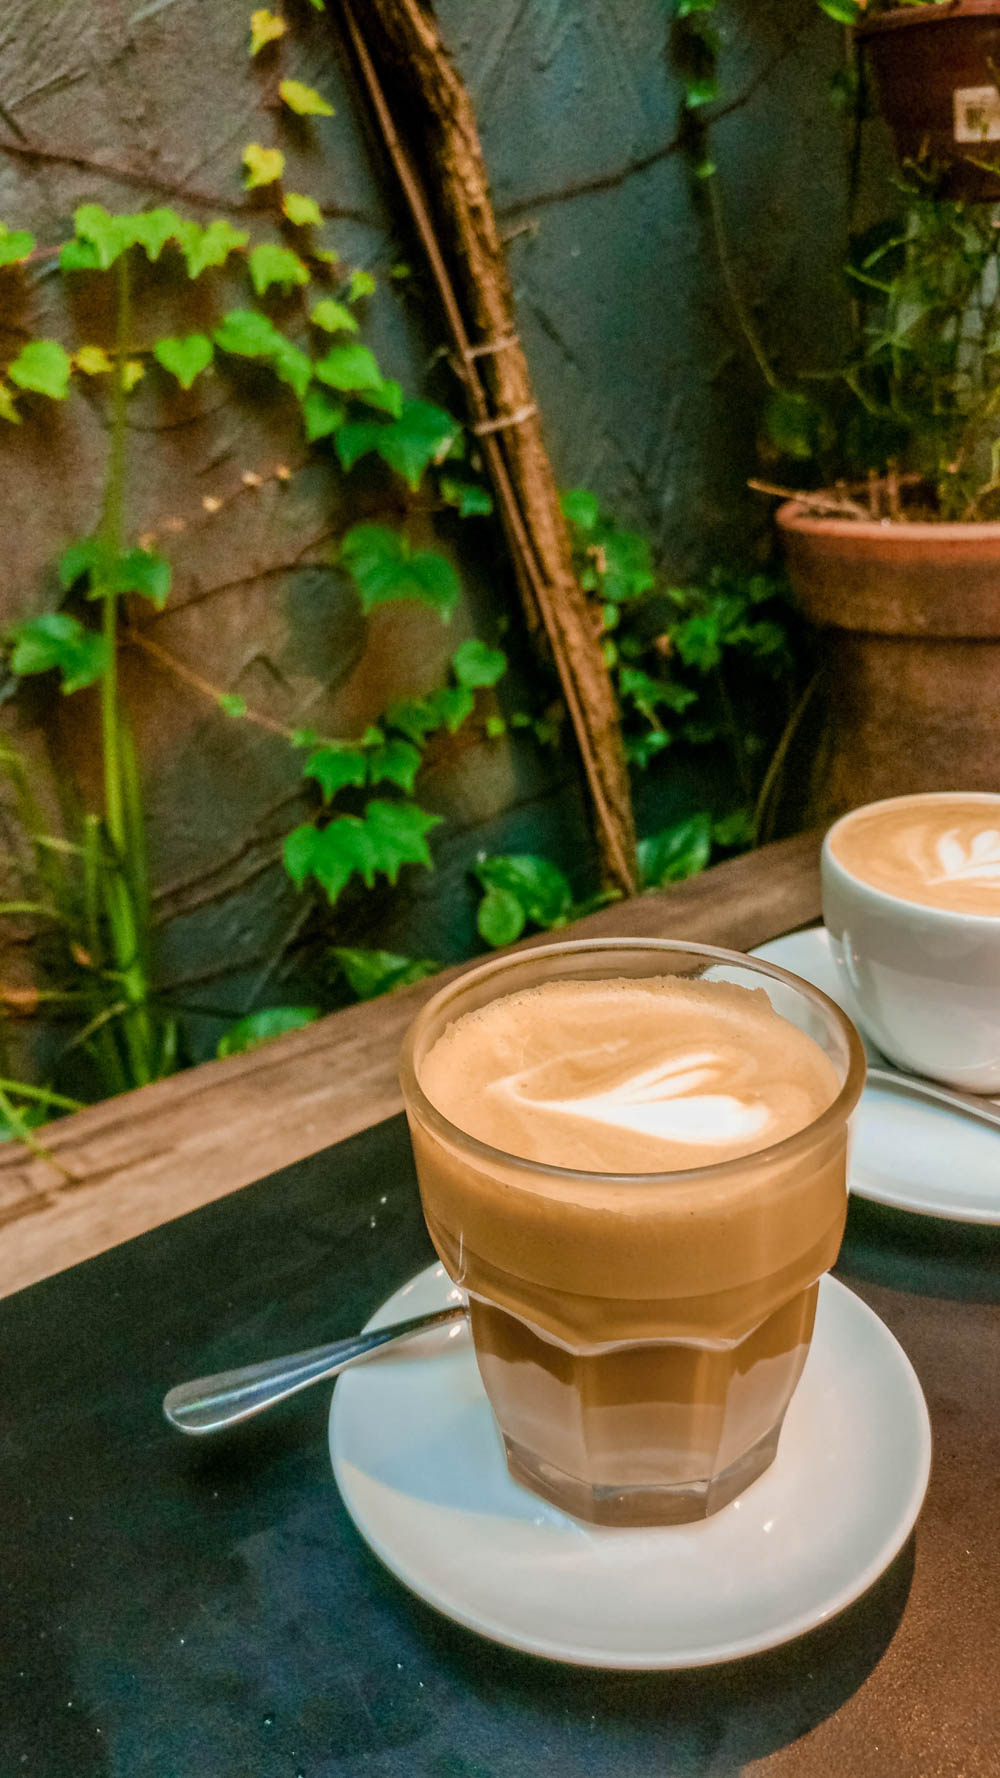 Flat white at KOF - King of The Fork - Specialty coffee shop guide to São Paulo, Brazil | Aliz's Wonderland